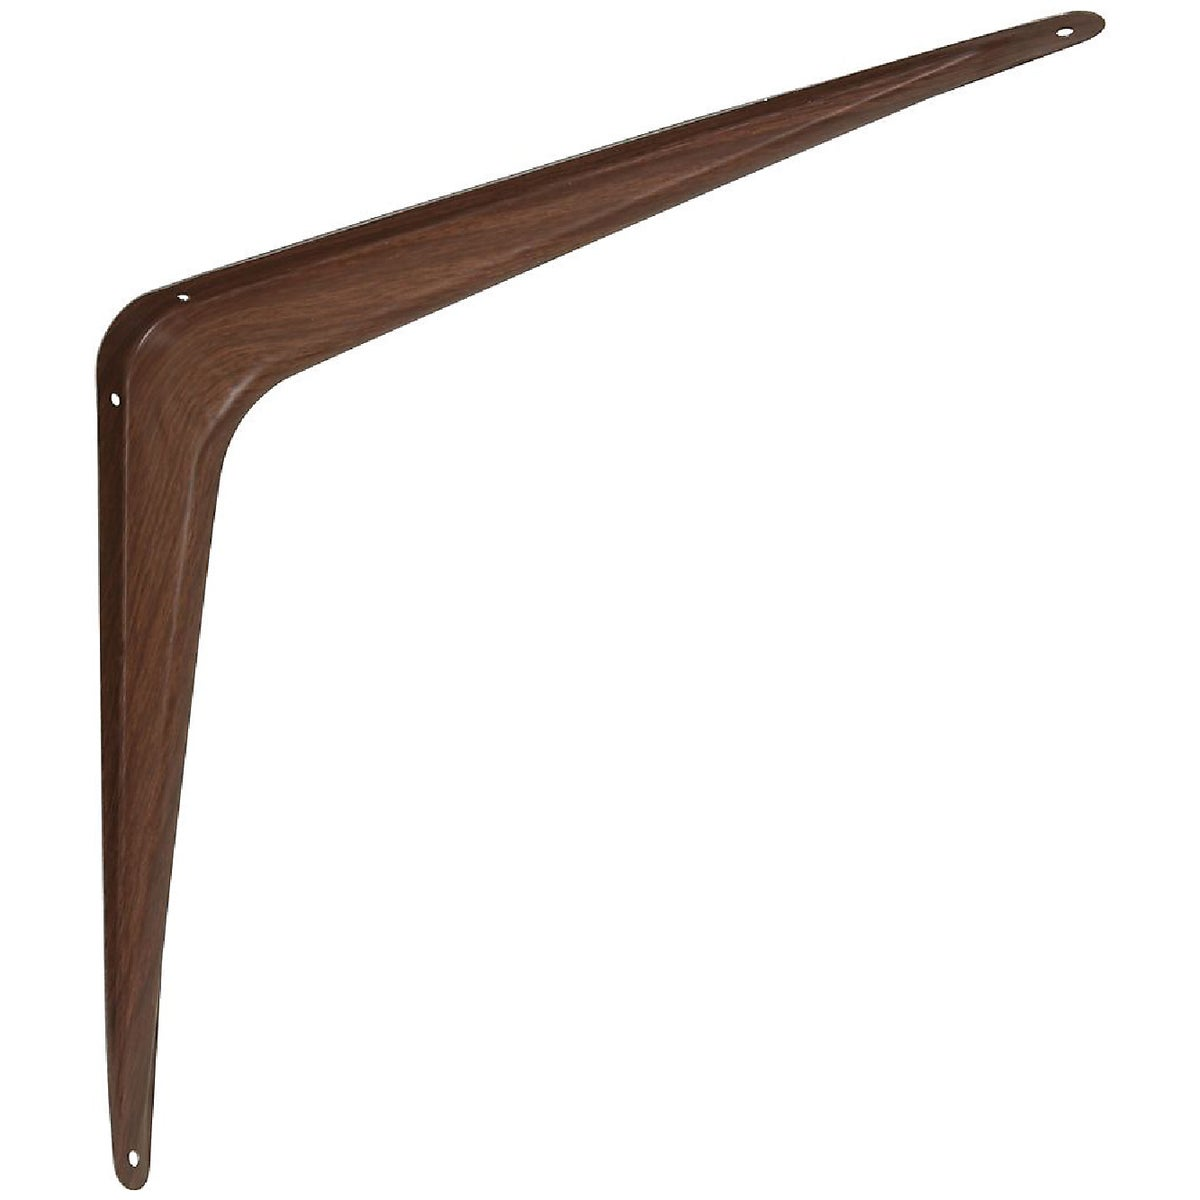 12X14 FW SHELF BRACKET